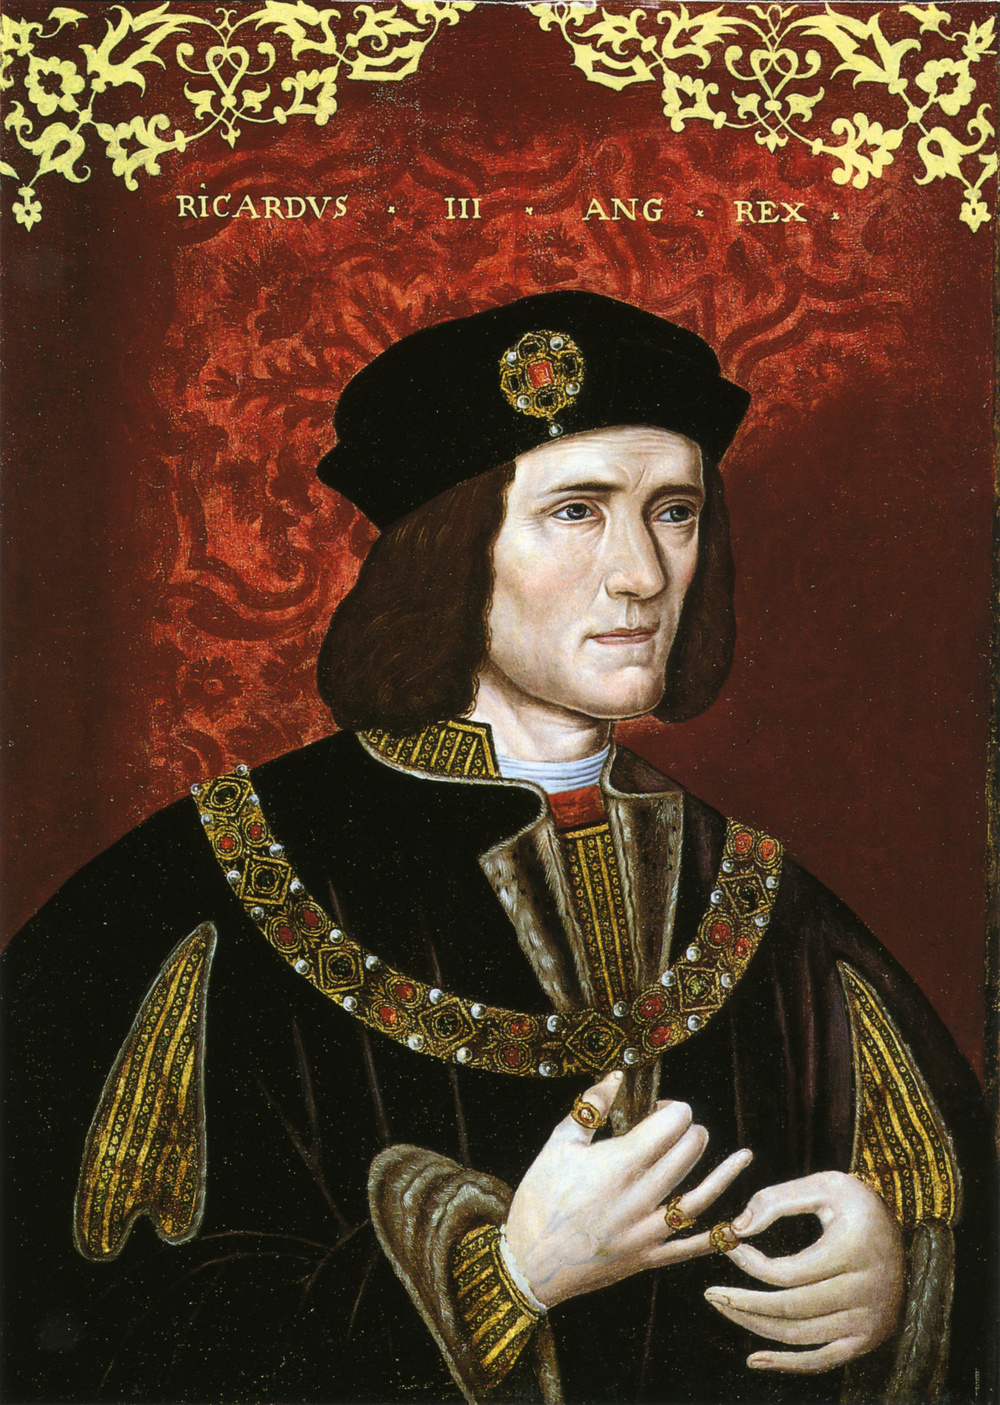 Public Domain use as per http://en.wikipedia.org/wiki/File:King_Richard_III.jpg